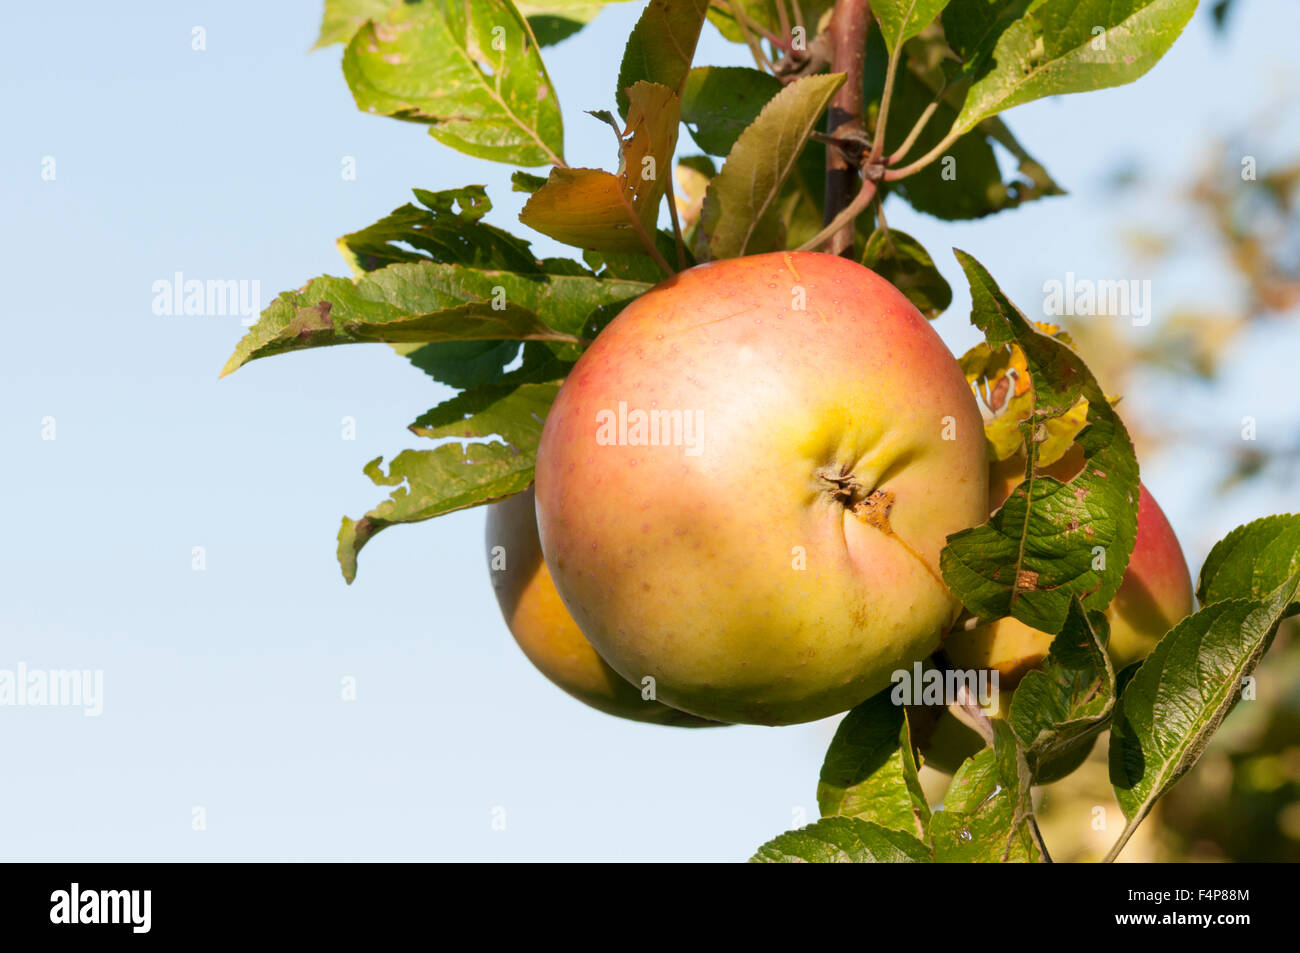 A Dunn's Seedling apple growing on a tree. - Stock Image